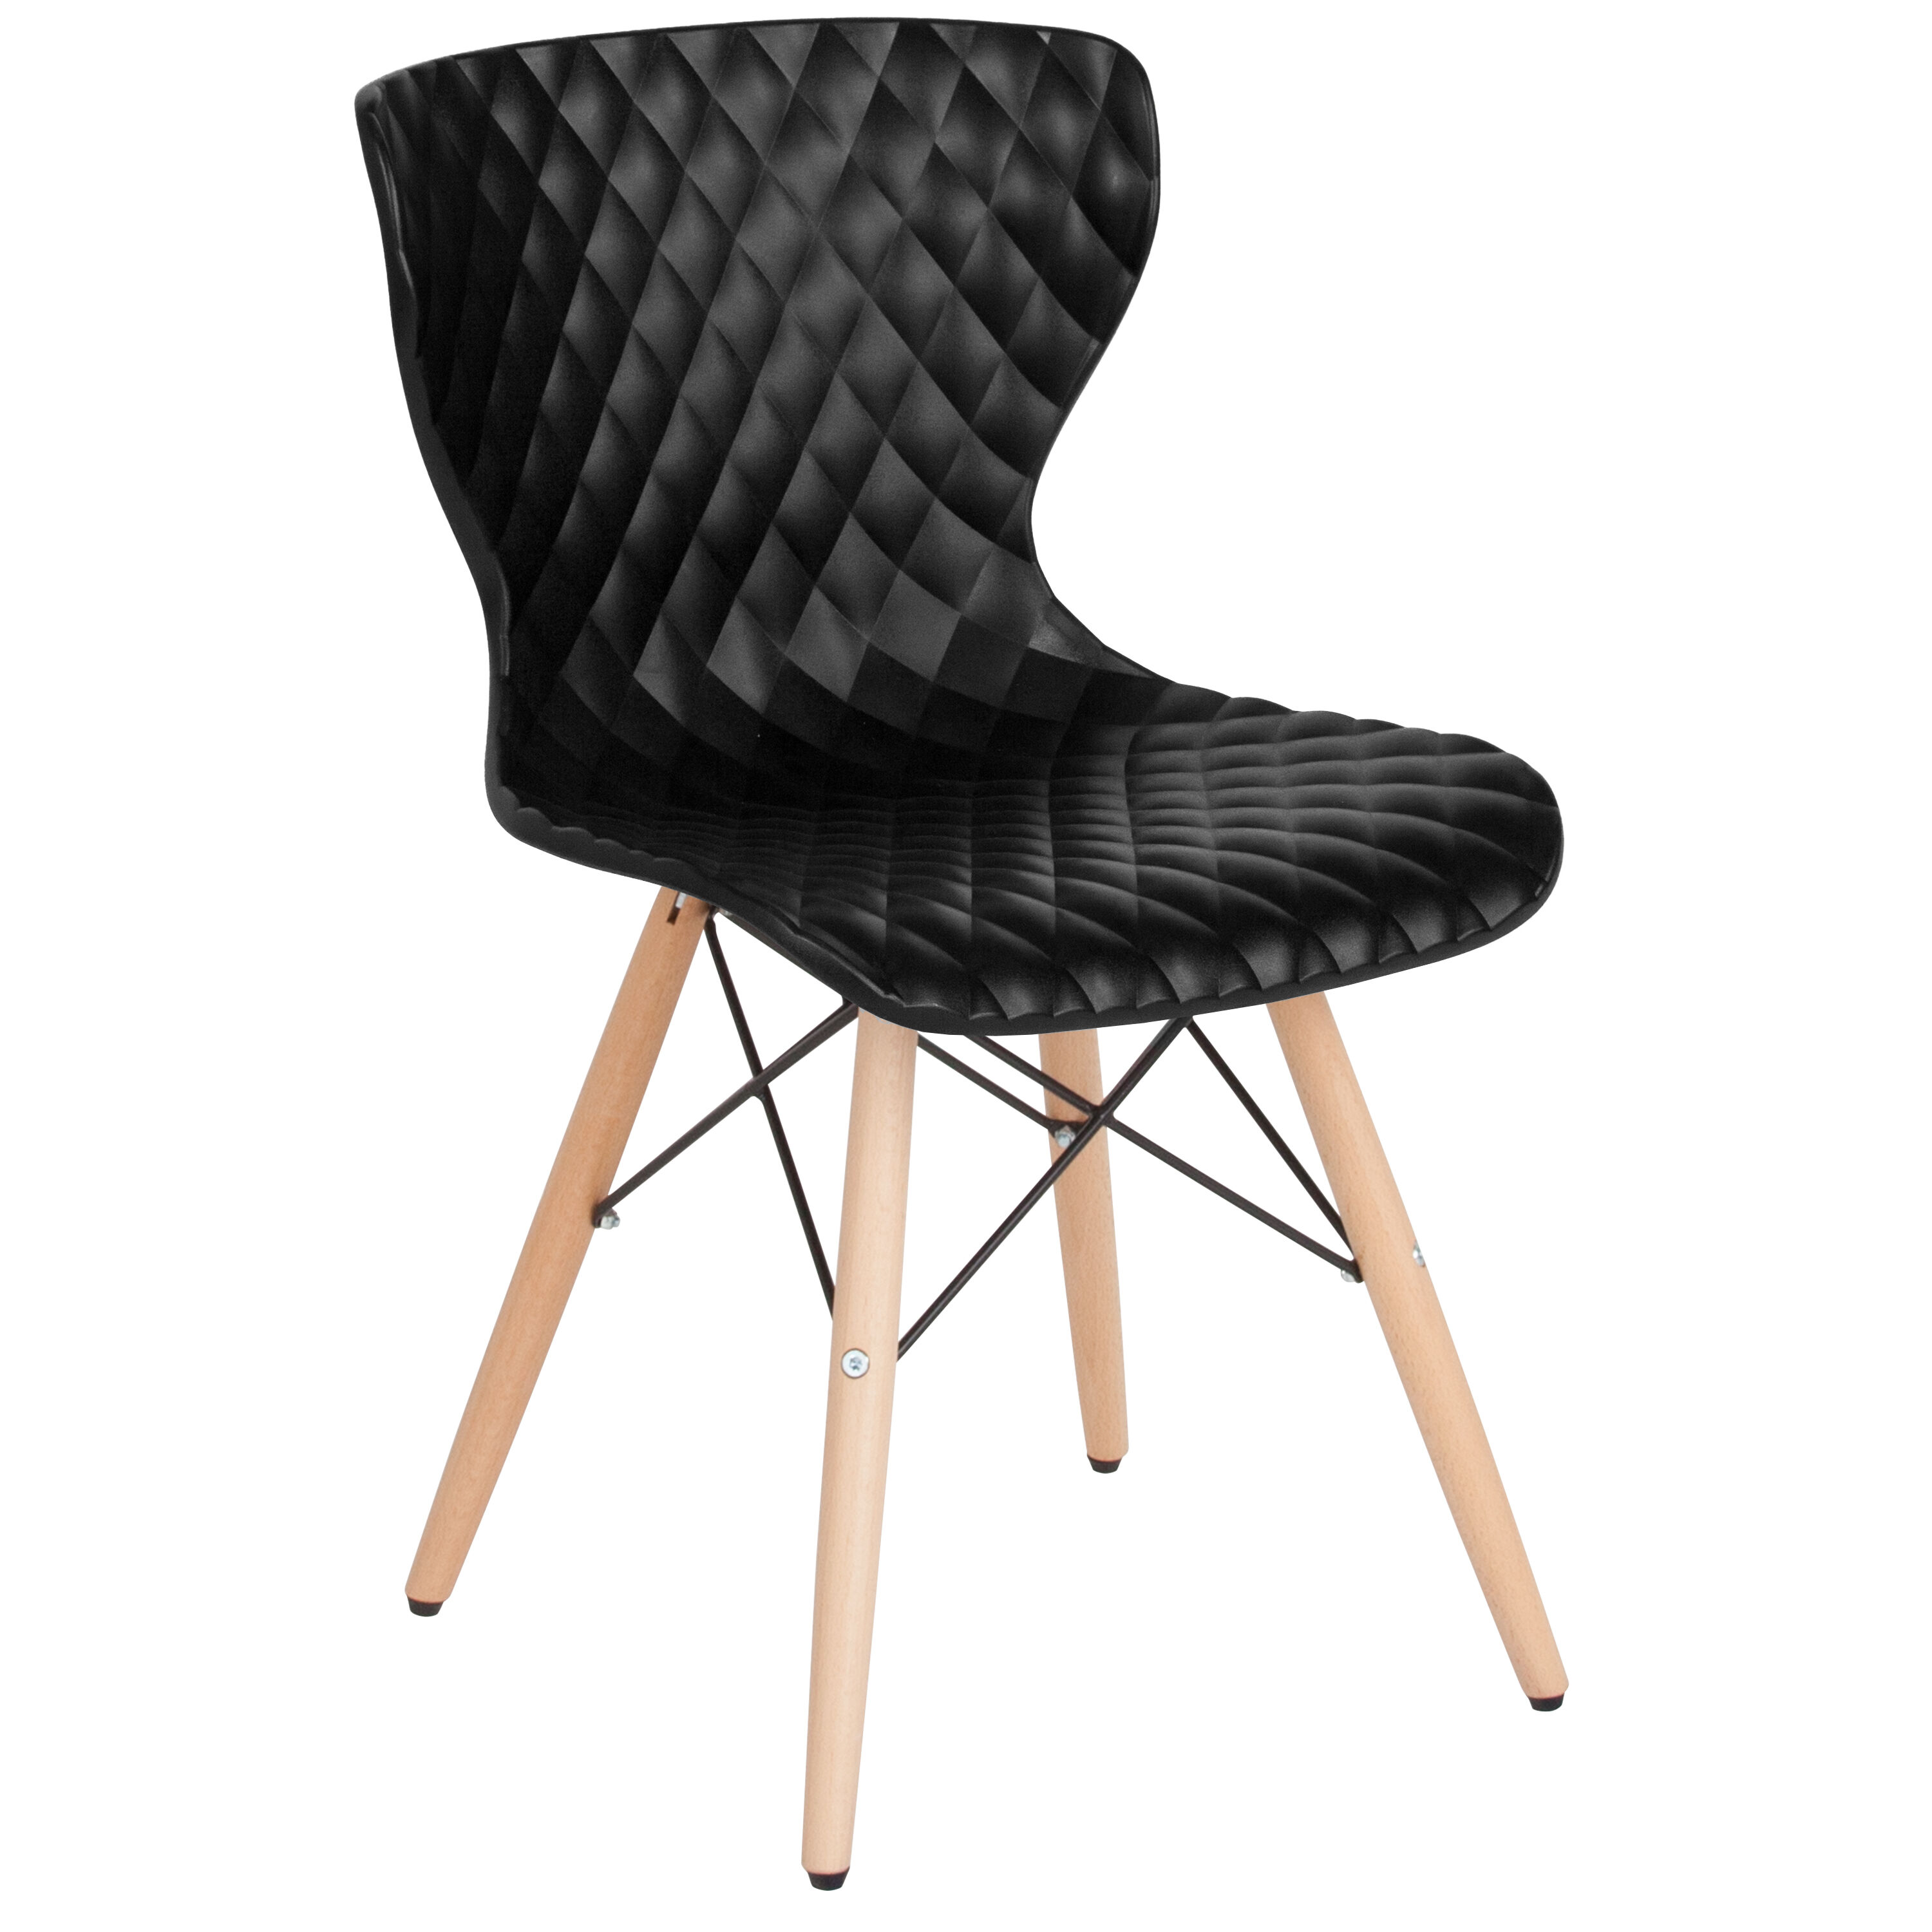 black plastic chair with wooden legs proper posture ball bedford contemporary design